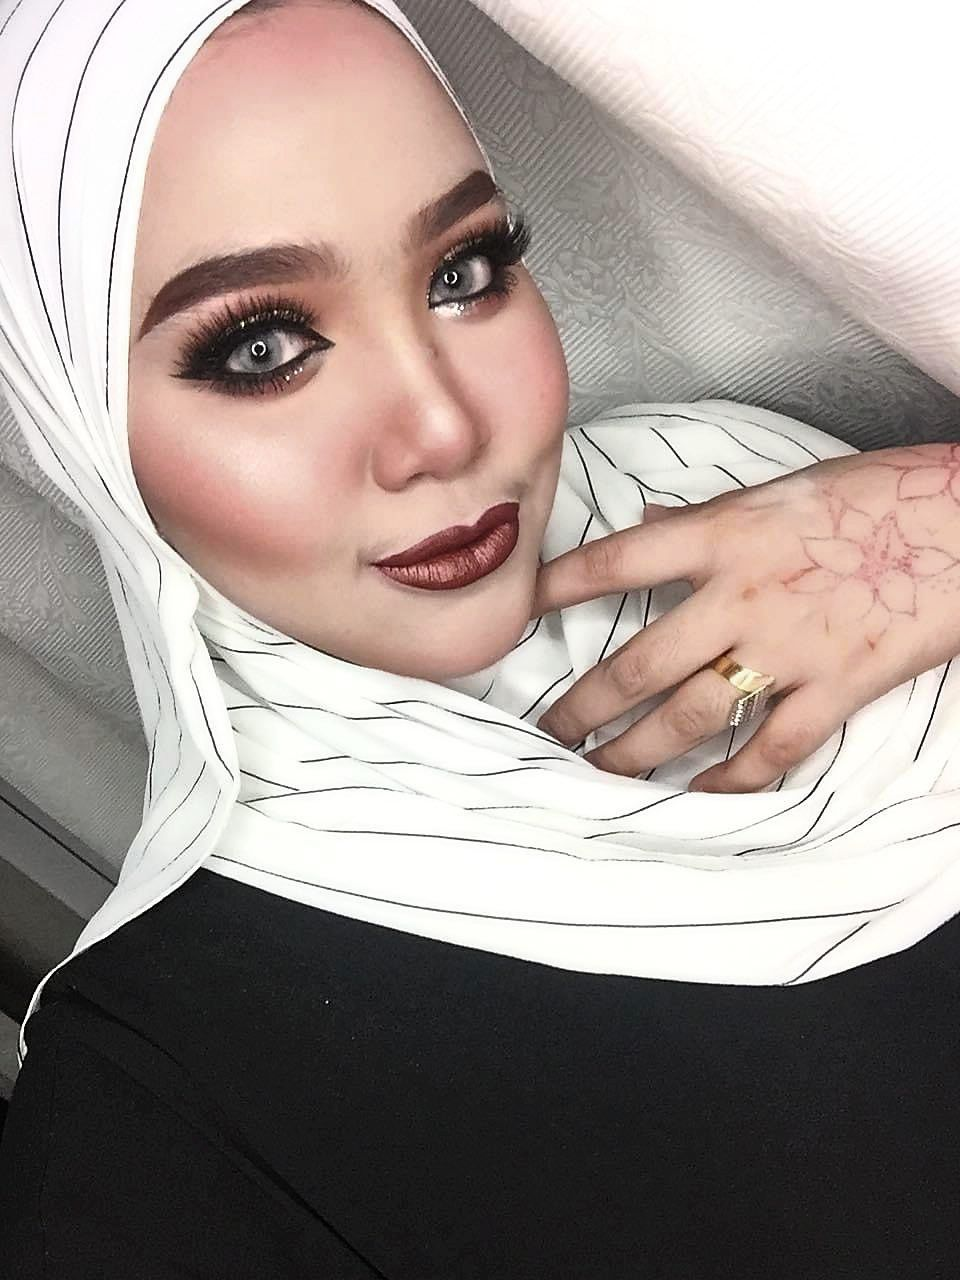 Mimie Aziz, who is cherishing this downtime to care for her baby boy, says she will resume offering her makeup services when things get better. — Photo: Mimie Aziz